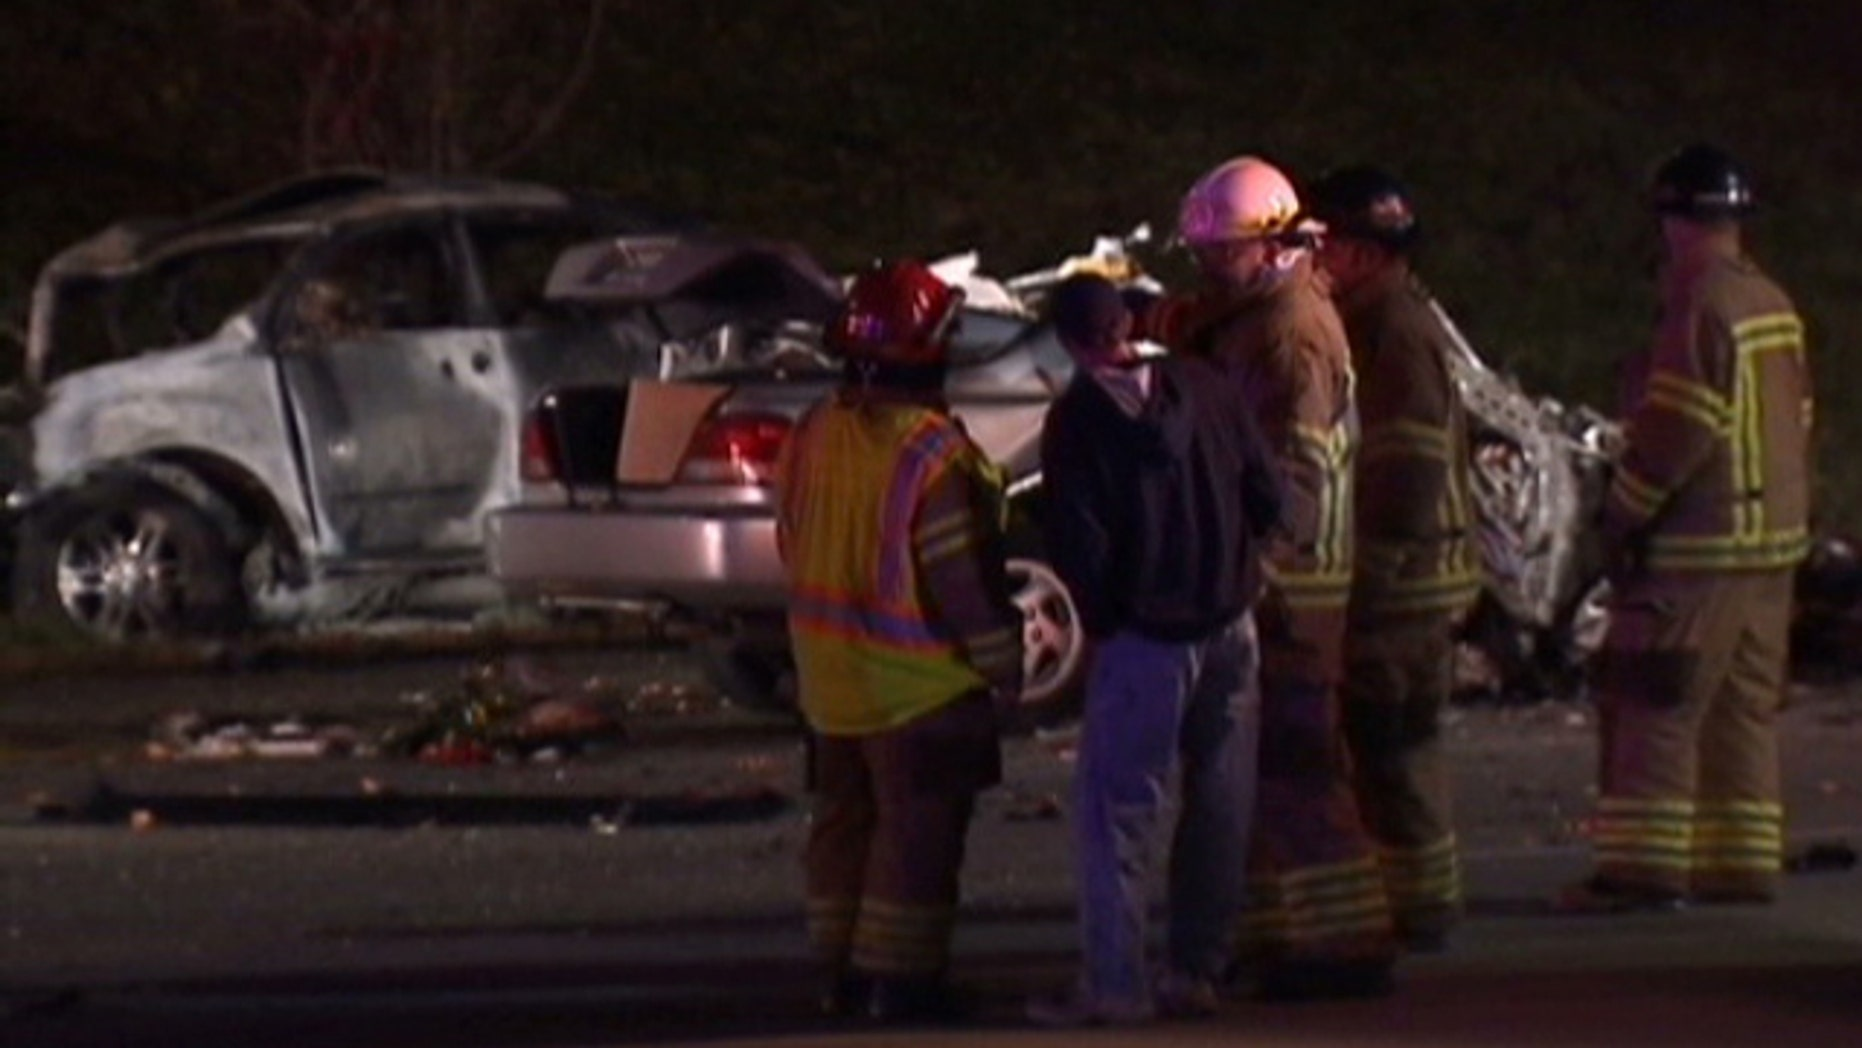 Oct. 23, 2011: First responders on the scene after a deadly car accident in Southfield, Mich.